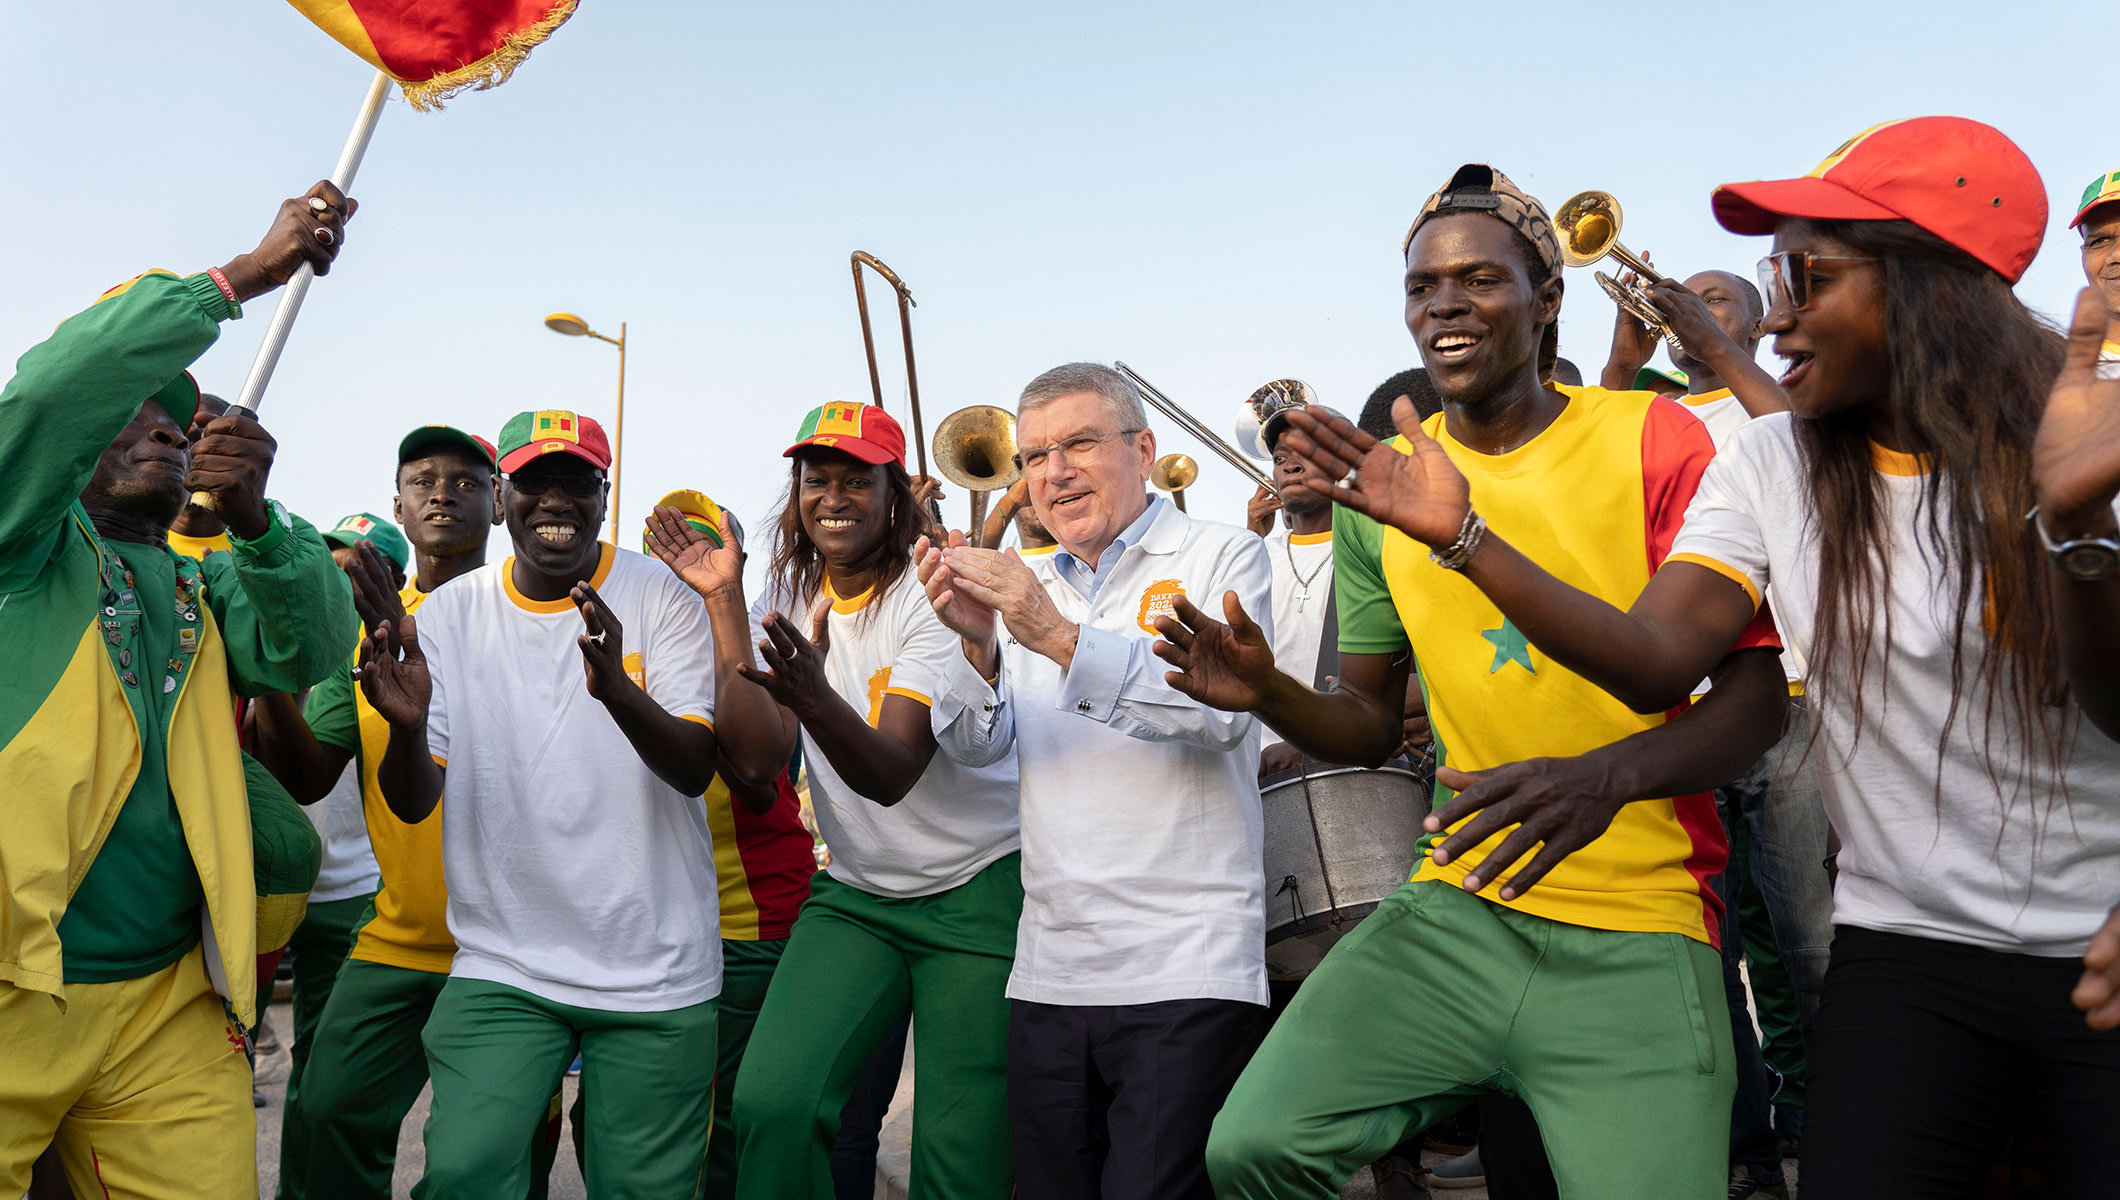 IOC President in Senegal on second day of African tour